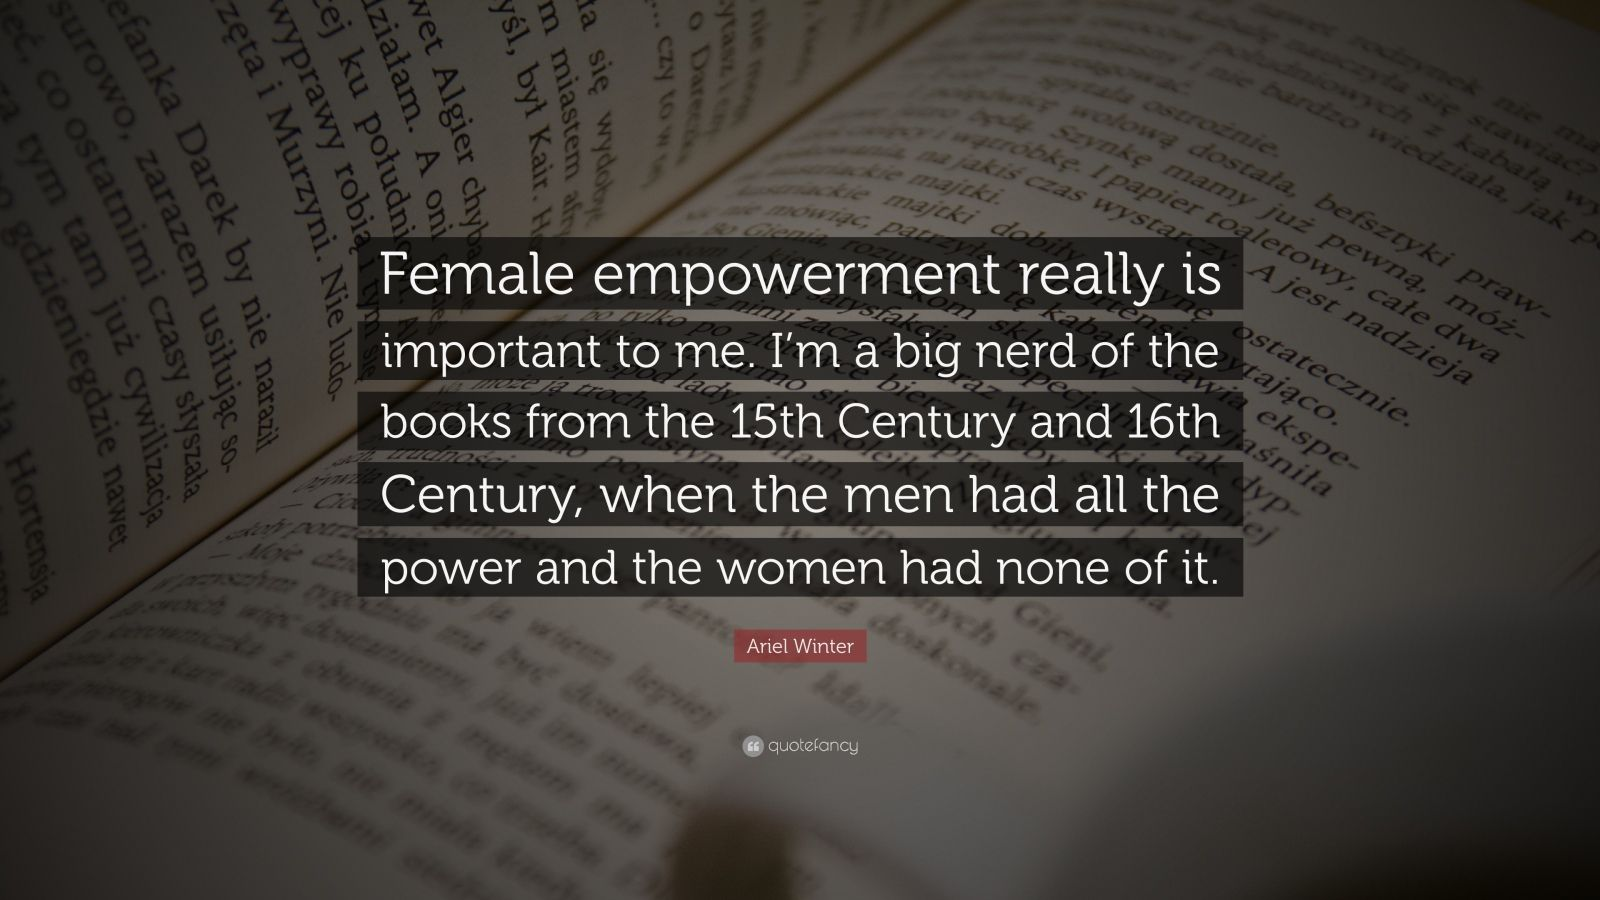 """Ariel Winter Quote: """"Female empowerment really is important to me. I'm a big nerd of the books from the 15th Century and 16th Century, when the men had all the power and the women had none of it."""""""